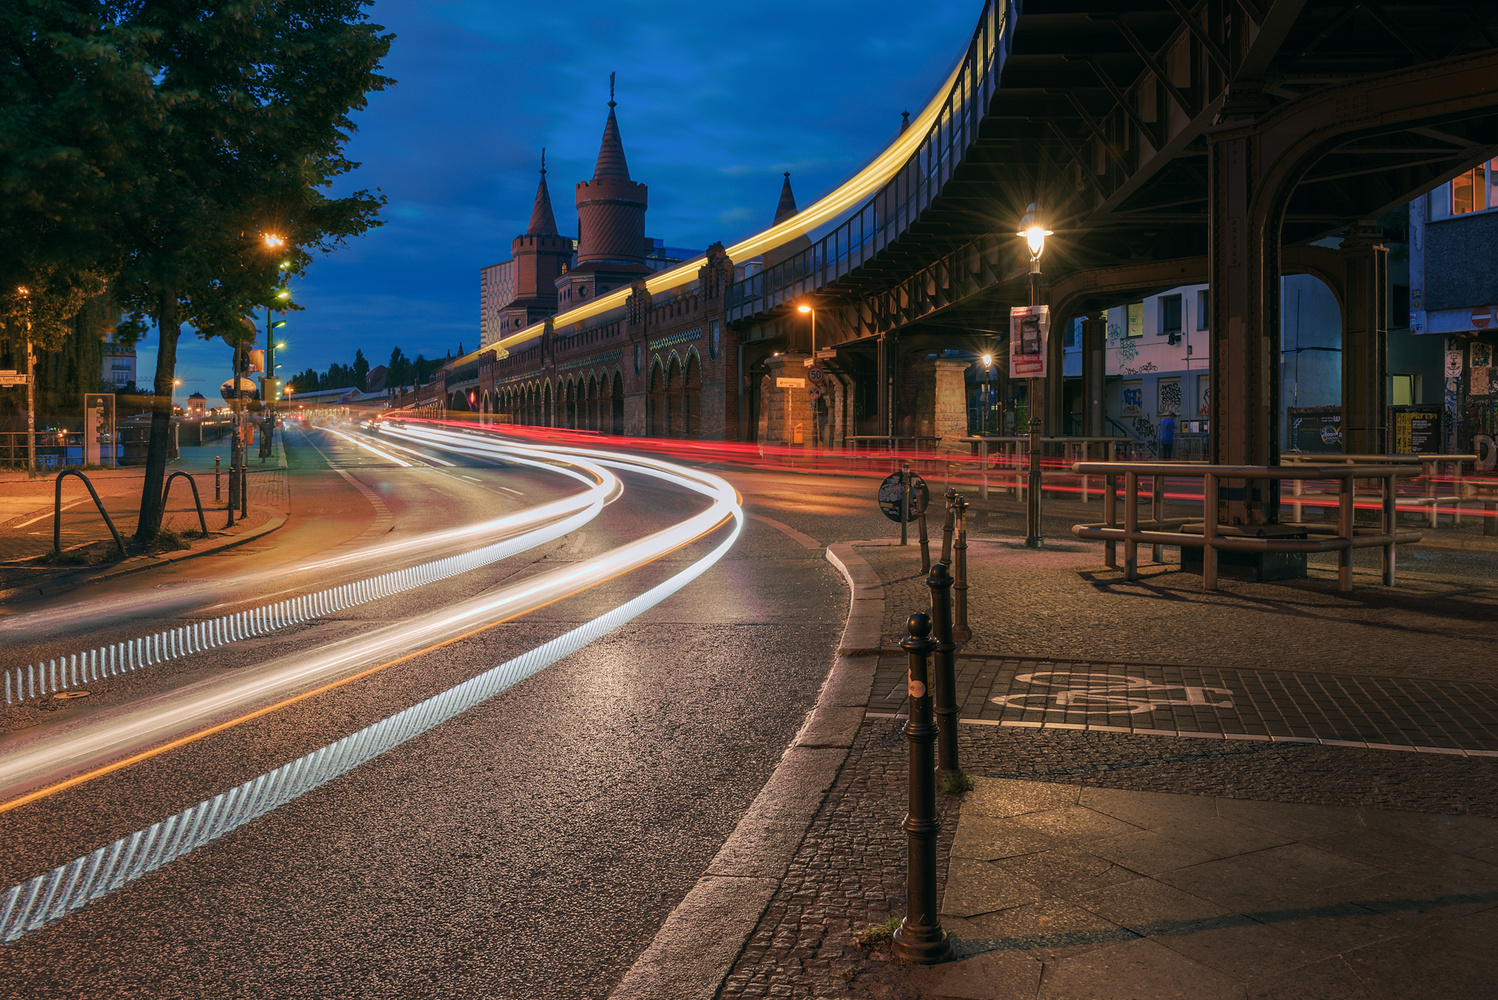 Traffic Hour by Bruce Girault